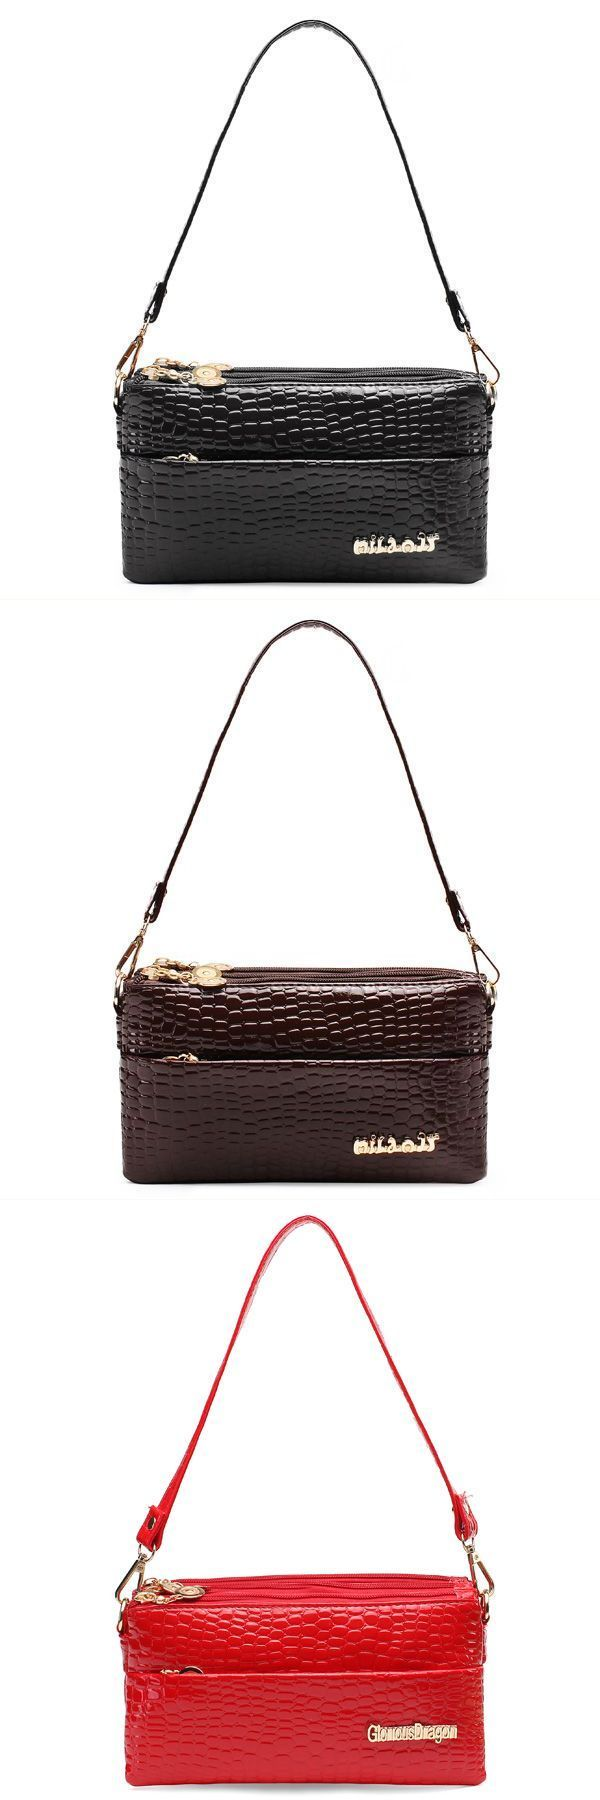 Clutch Bags For Wedding Guests Women 8217 S Crocodile Pu Leather Handbag Chain Shoulder Glasgow Gumtree